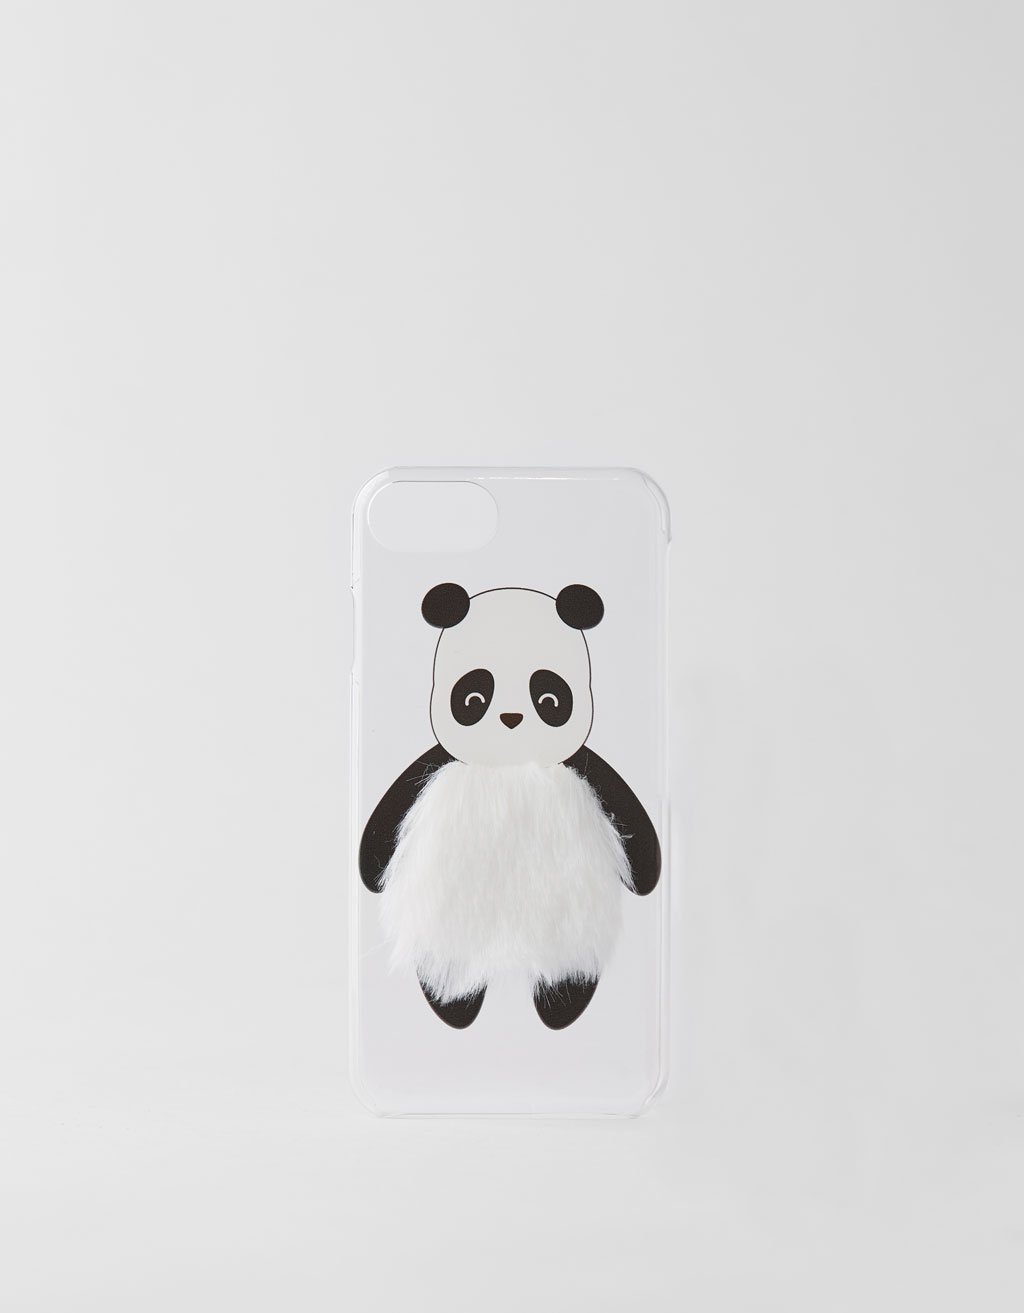 Panda iPhone 6 / 6S / 7 / 8 case